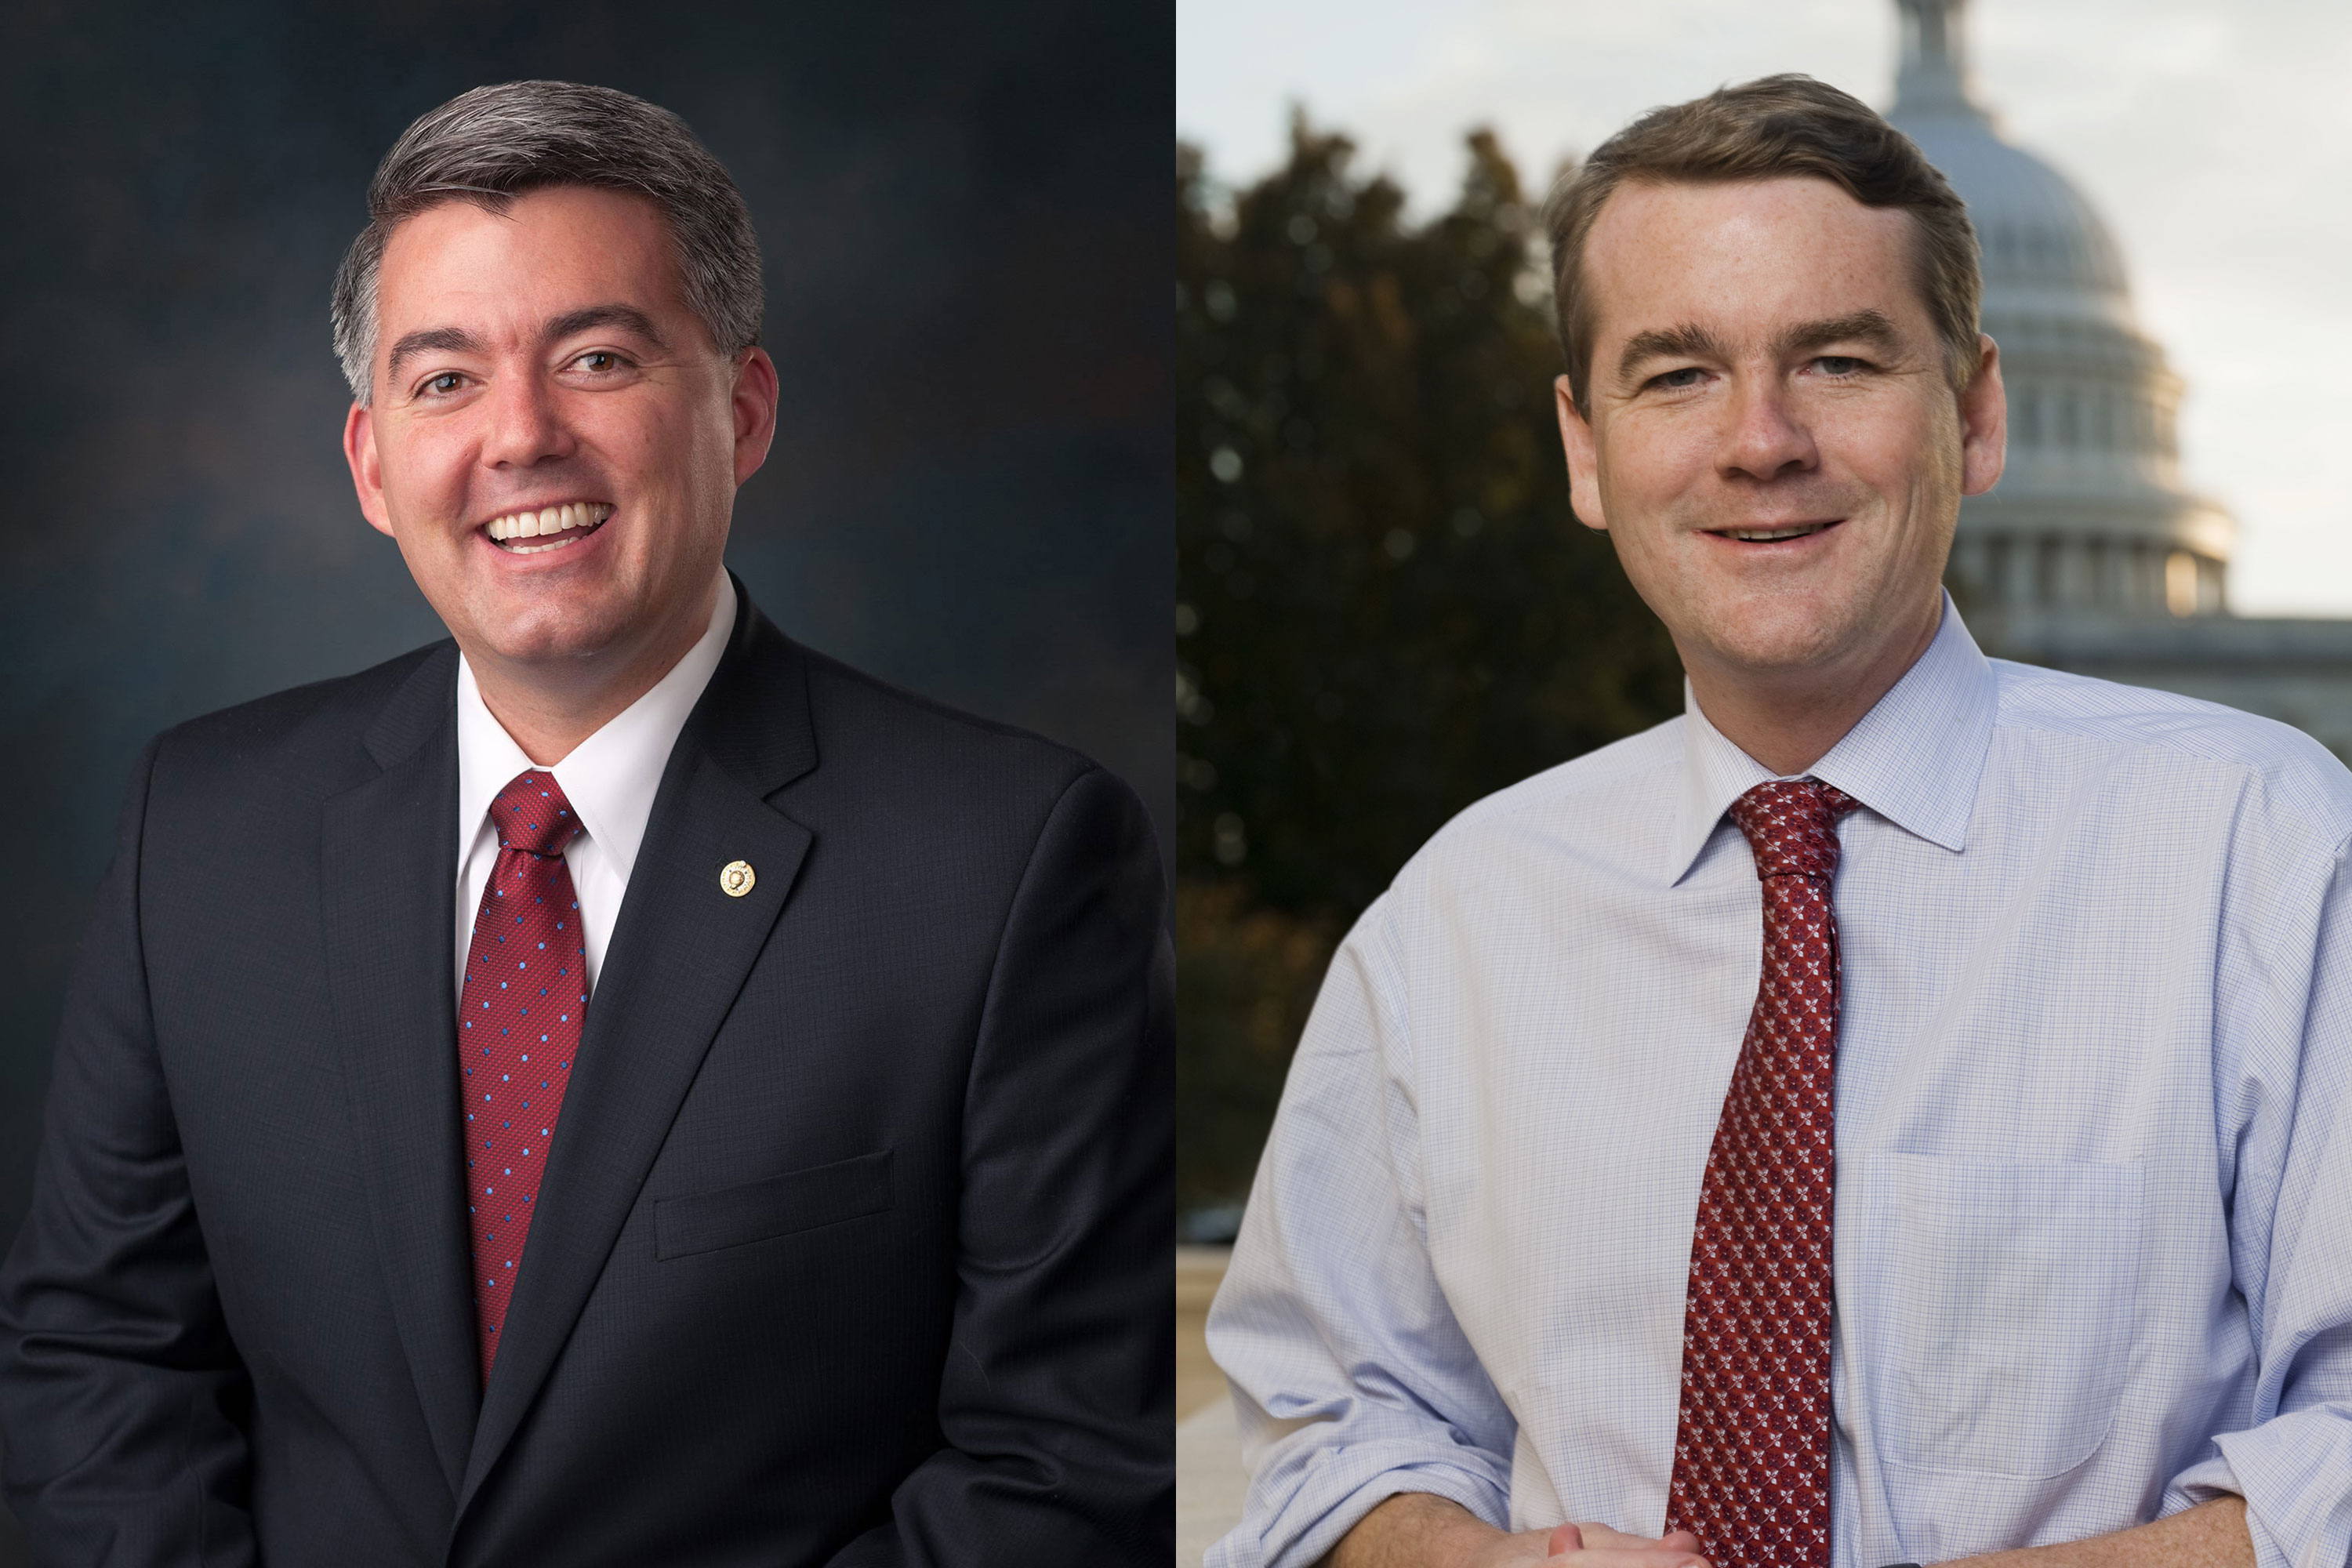 Photo: Colorado Senators Gardner & Bennet | Official Portraits